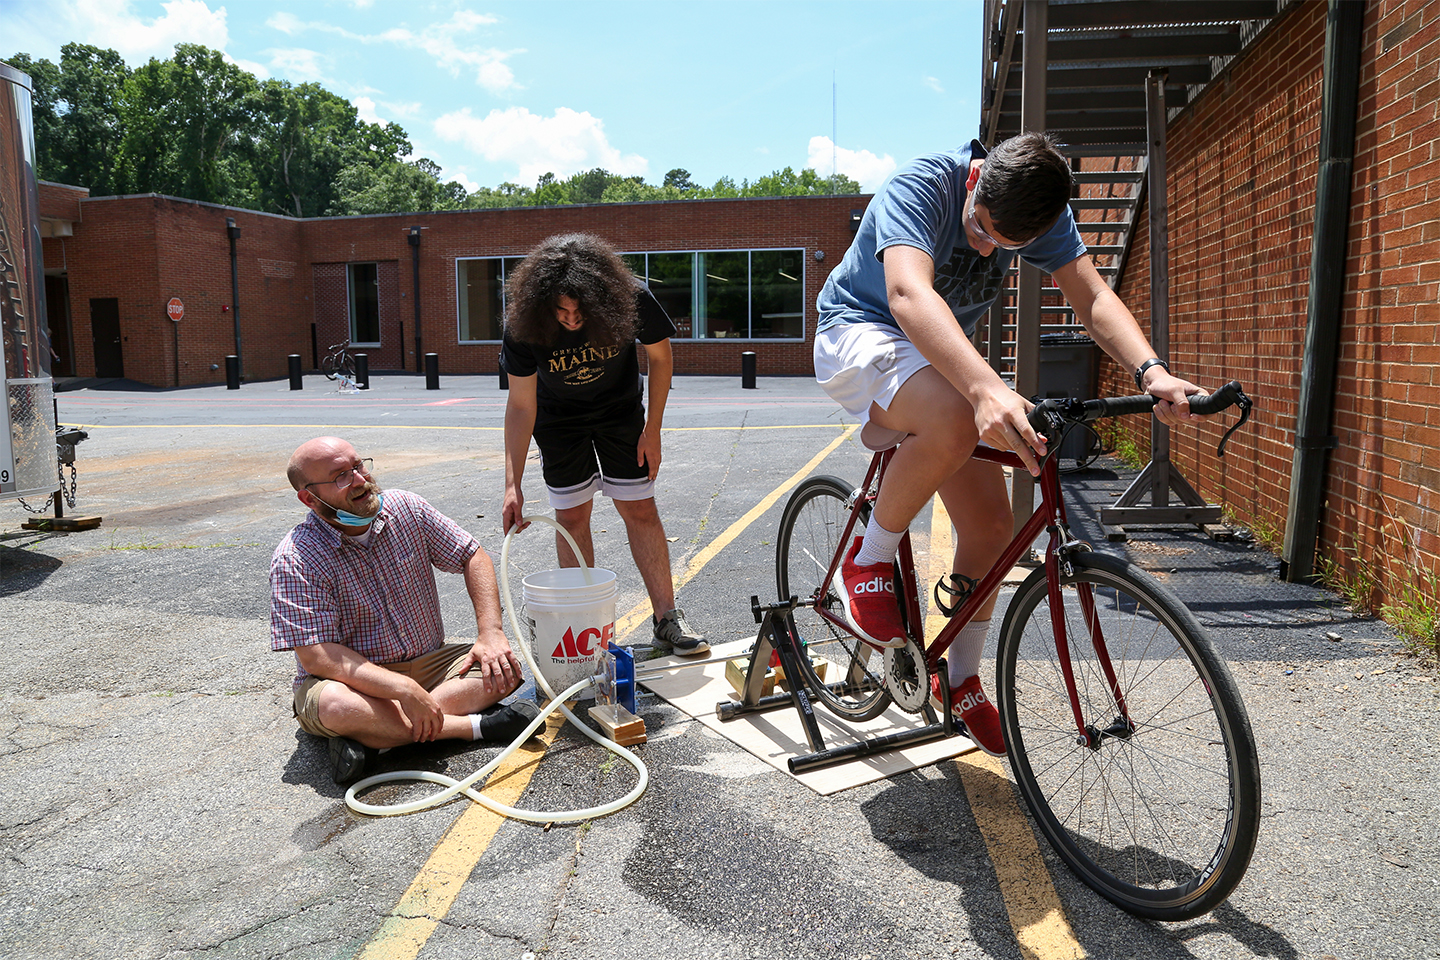 A student rides a stationary bicycle attached to a water pump while two people watch